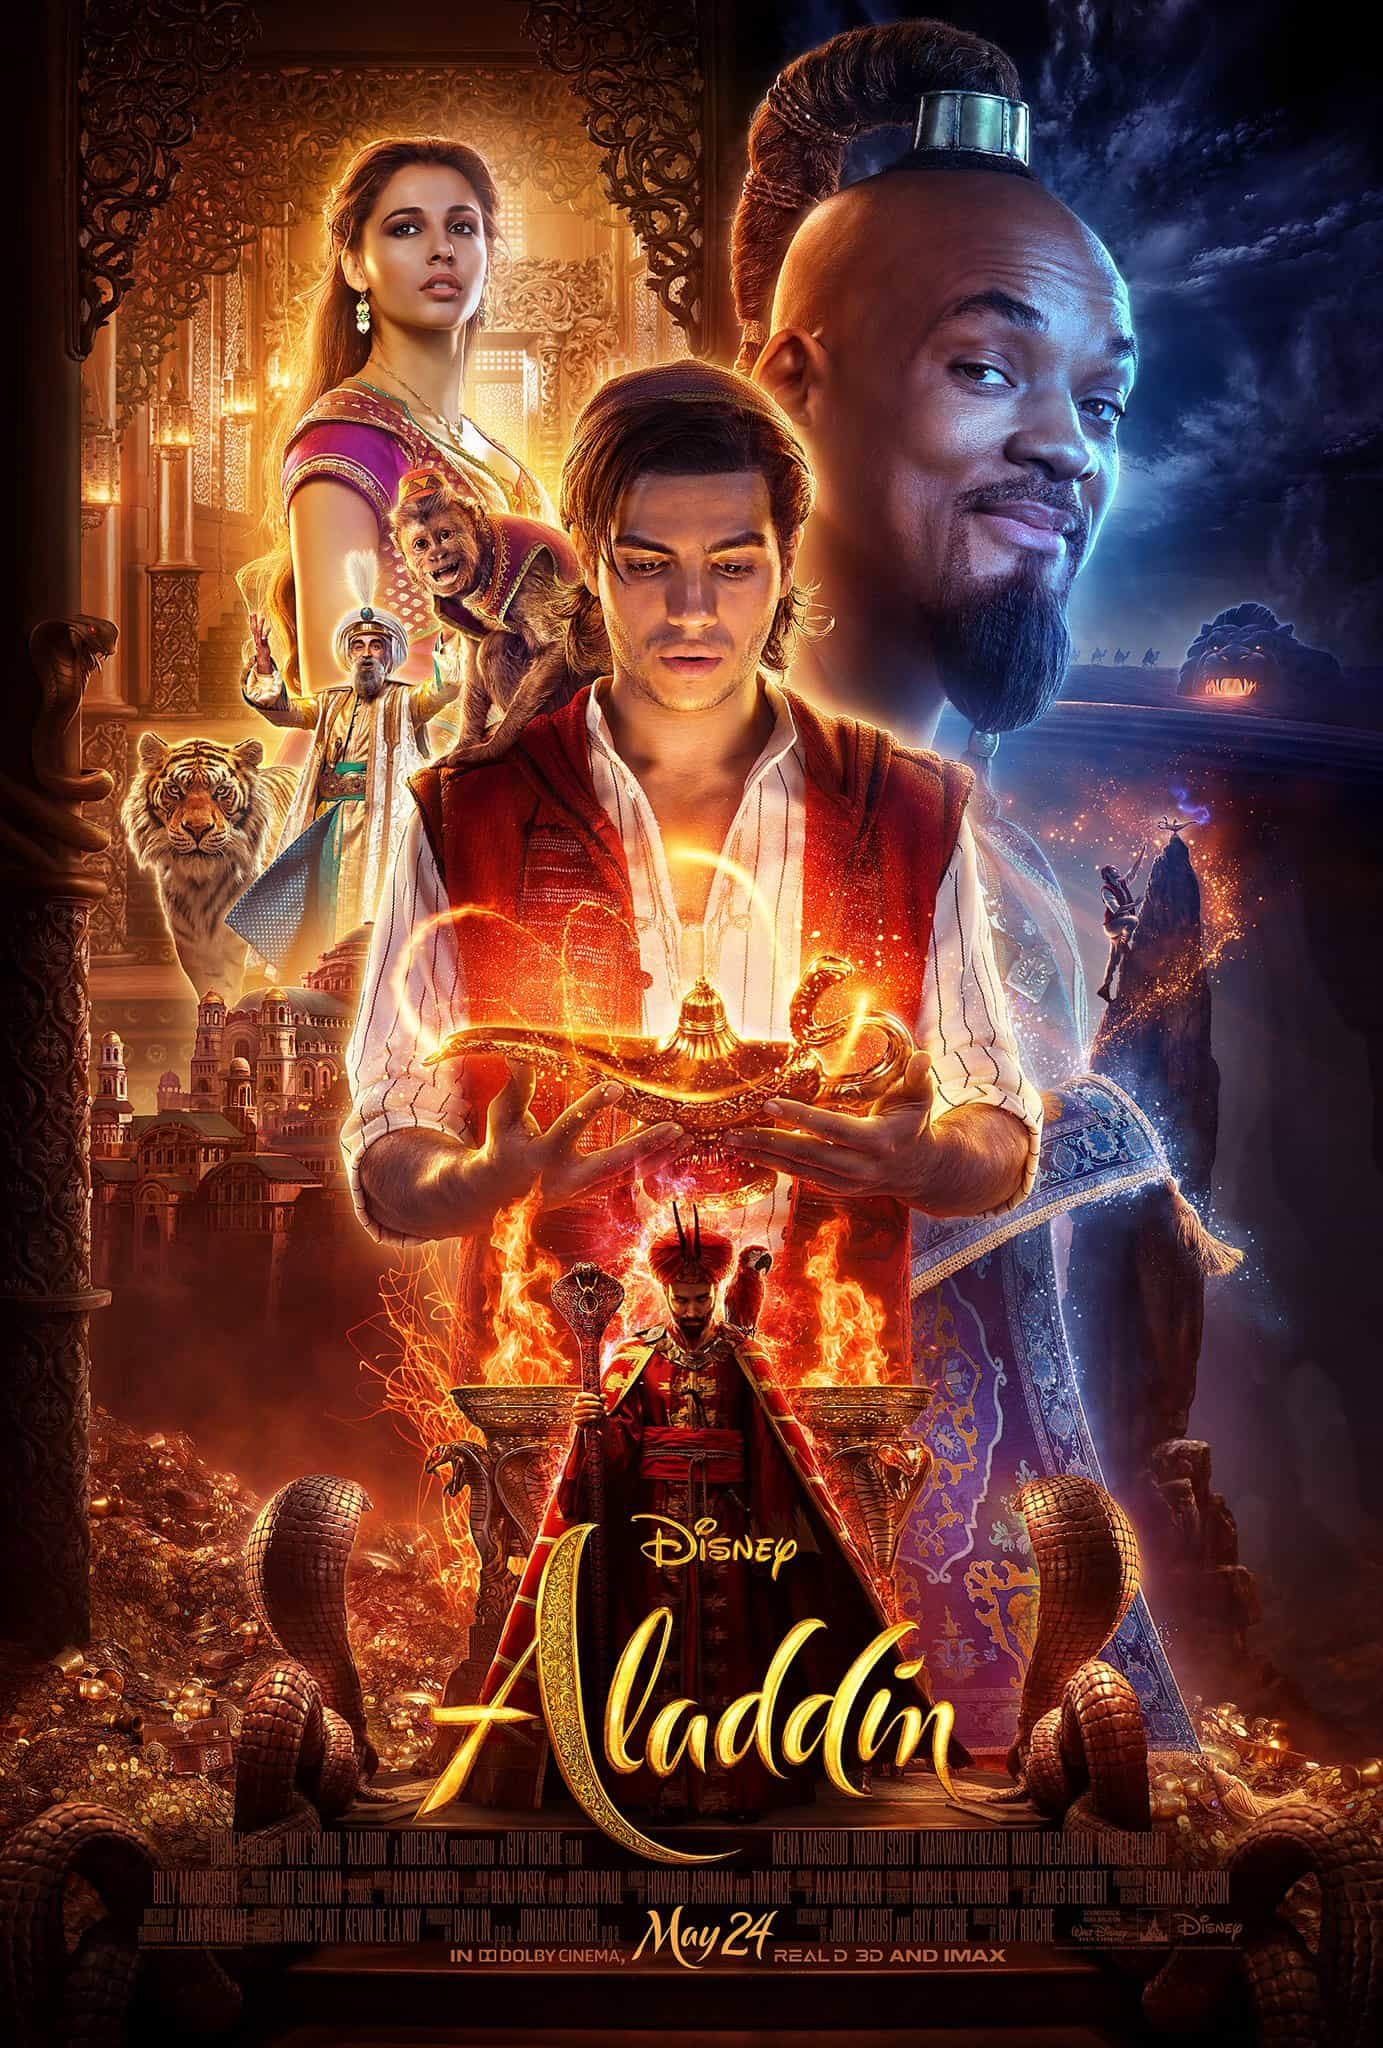 First look at the live action Aladdin from Disney